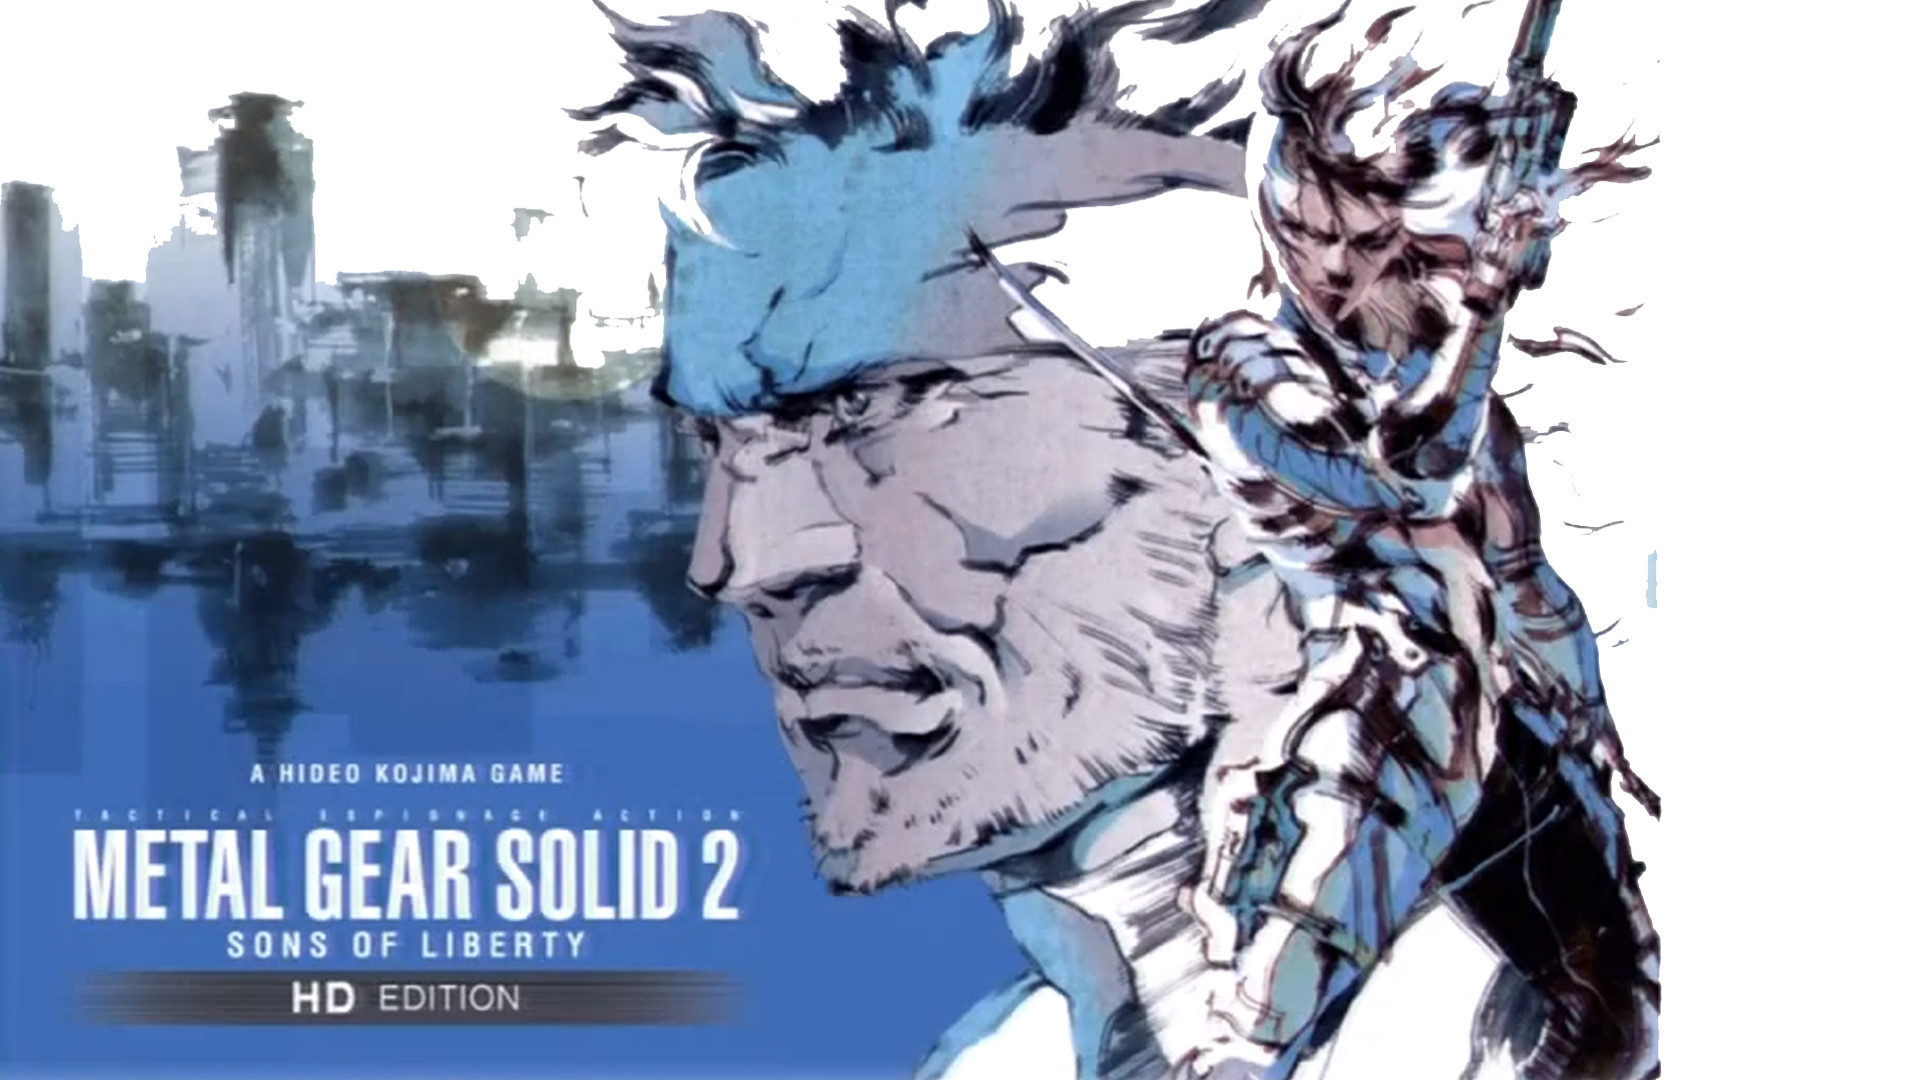 Metal Gear Solid 2 Wallpaper 74 Images